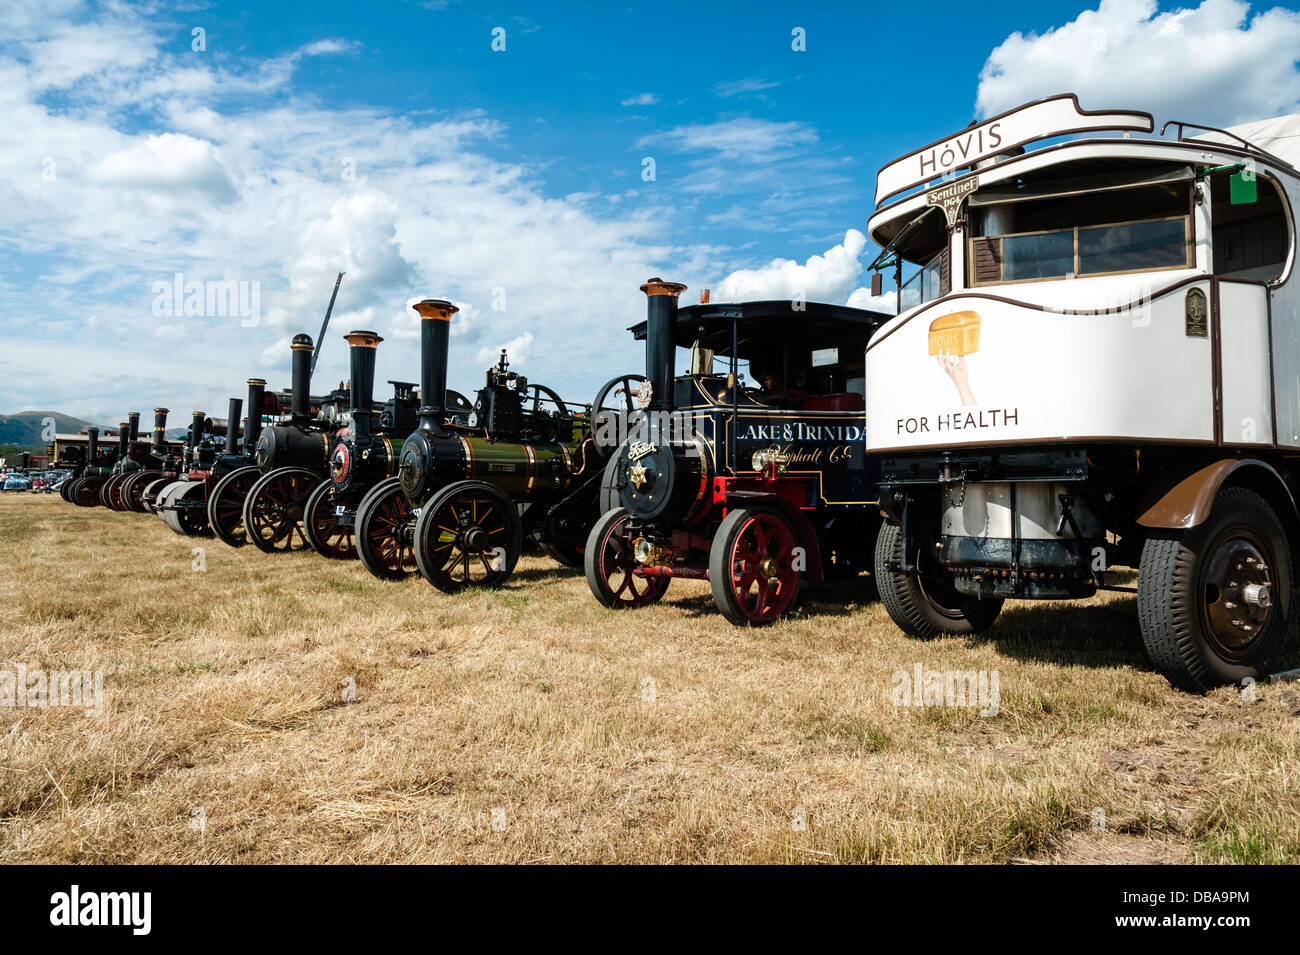 Line-up der Lokomobile am Welland Steam Rally, in der Nähe von den Malvern Hills, Worcestershire, UK. Stockbild